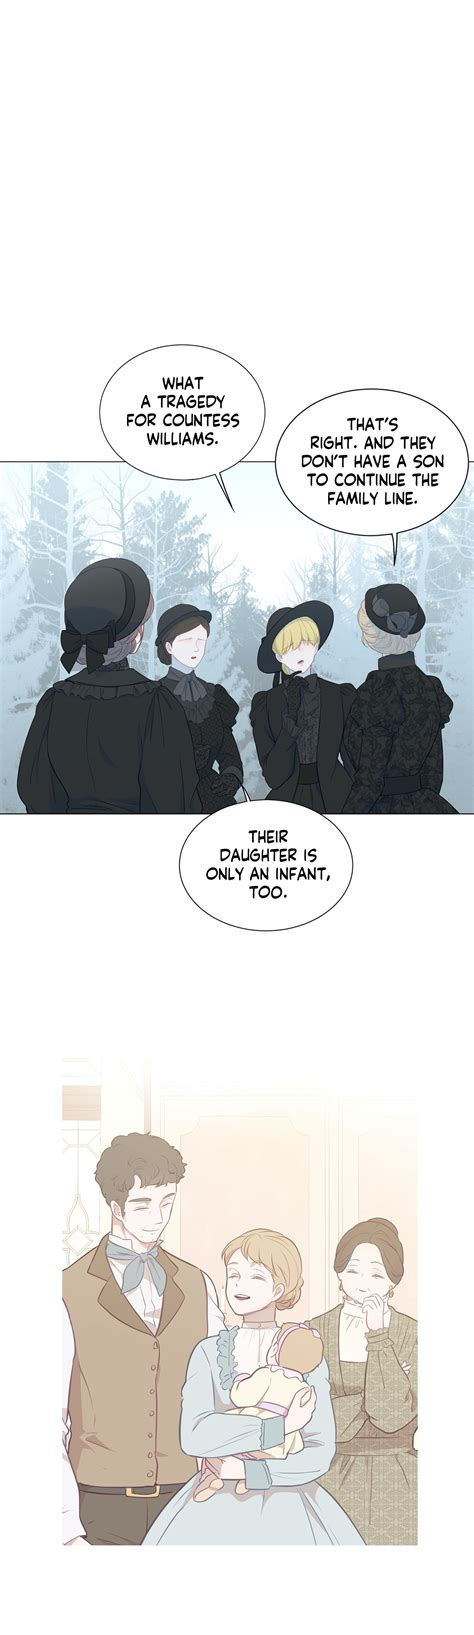 See more ideas about chłopcy. The Blood of Madam Giselle - Chapter 19 - Manhwa.club